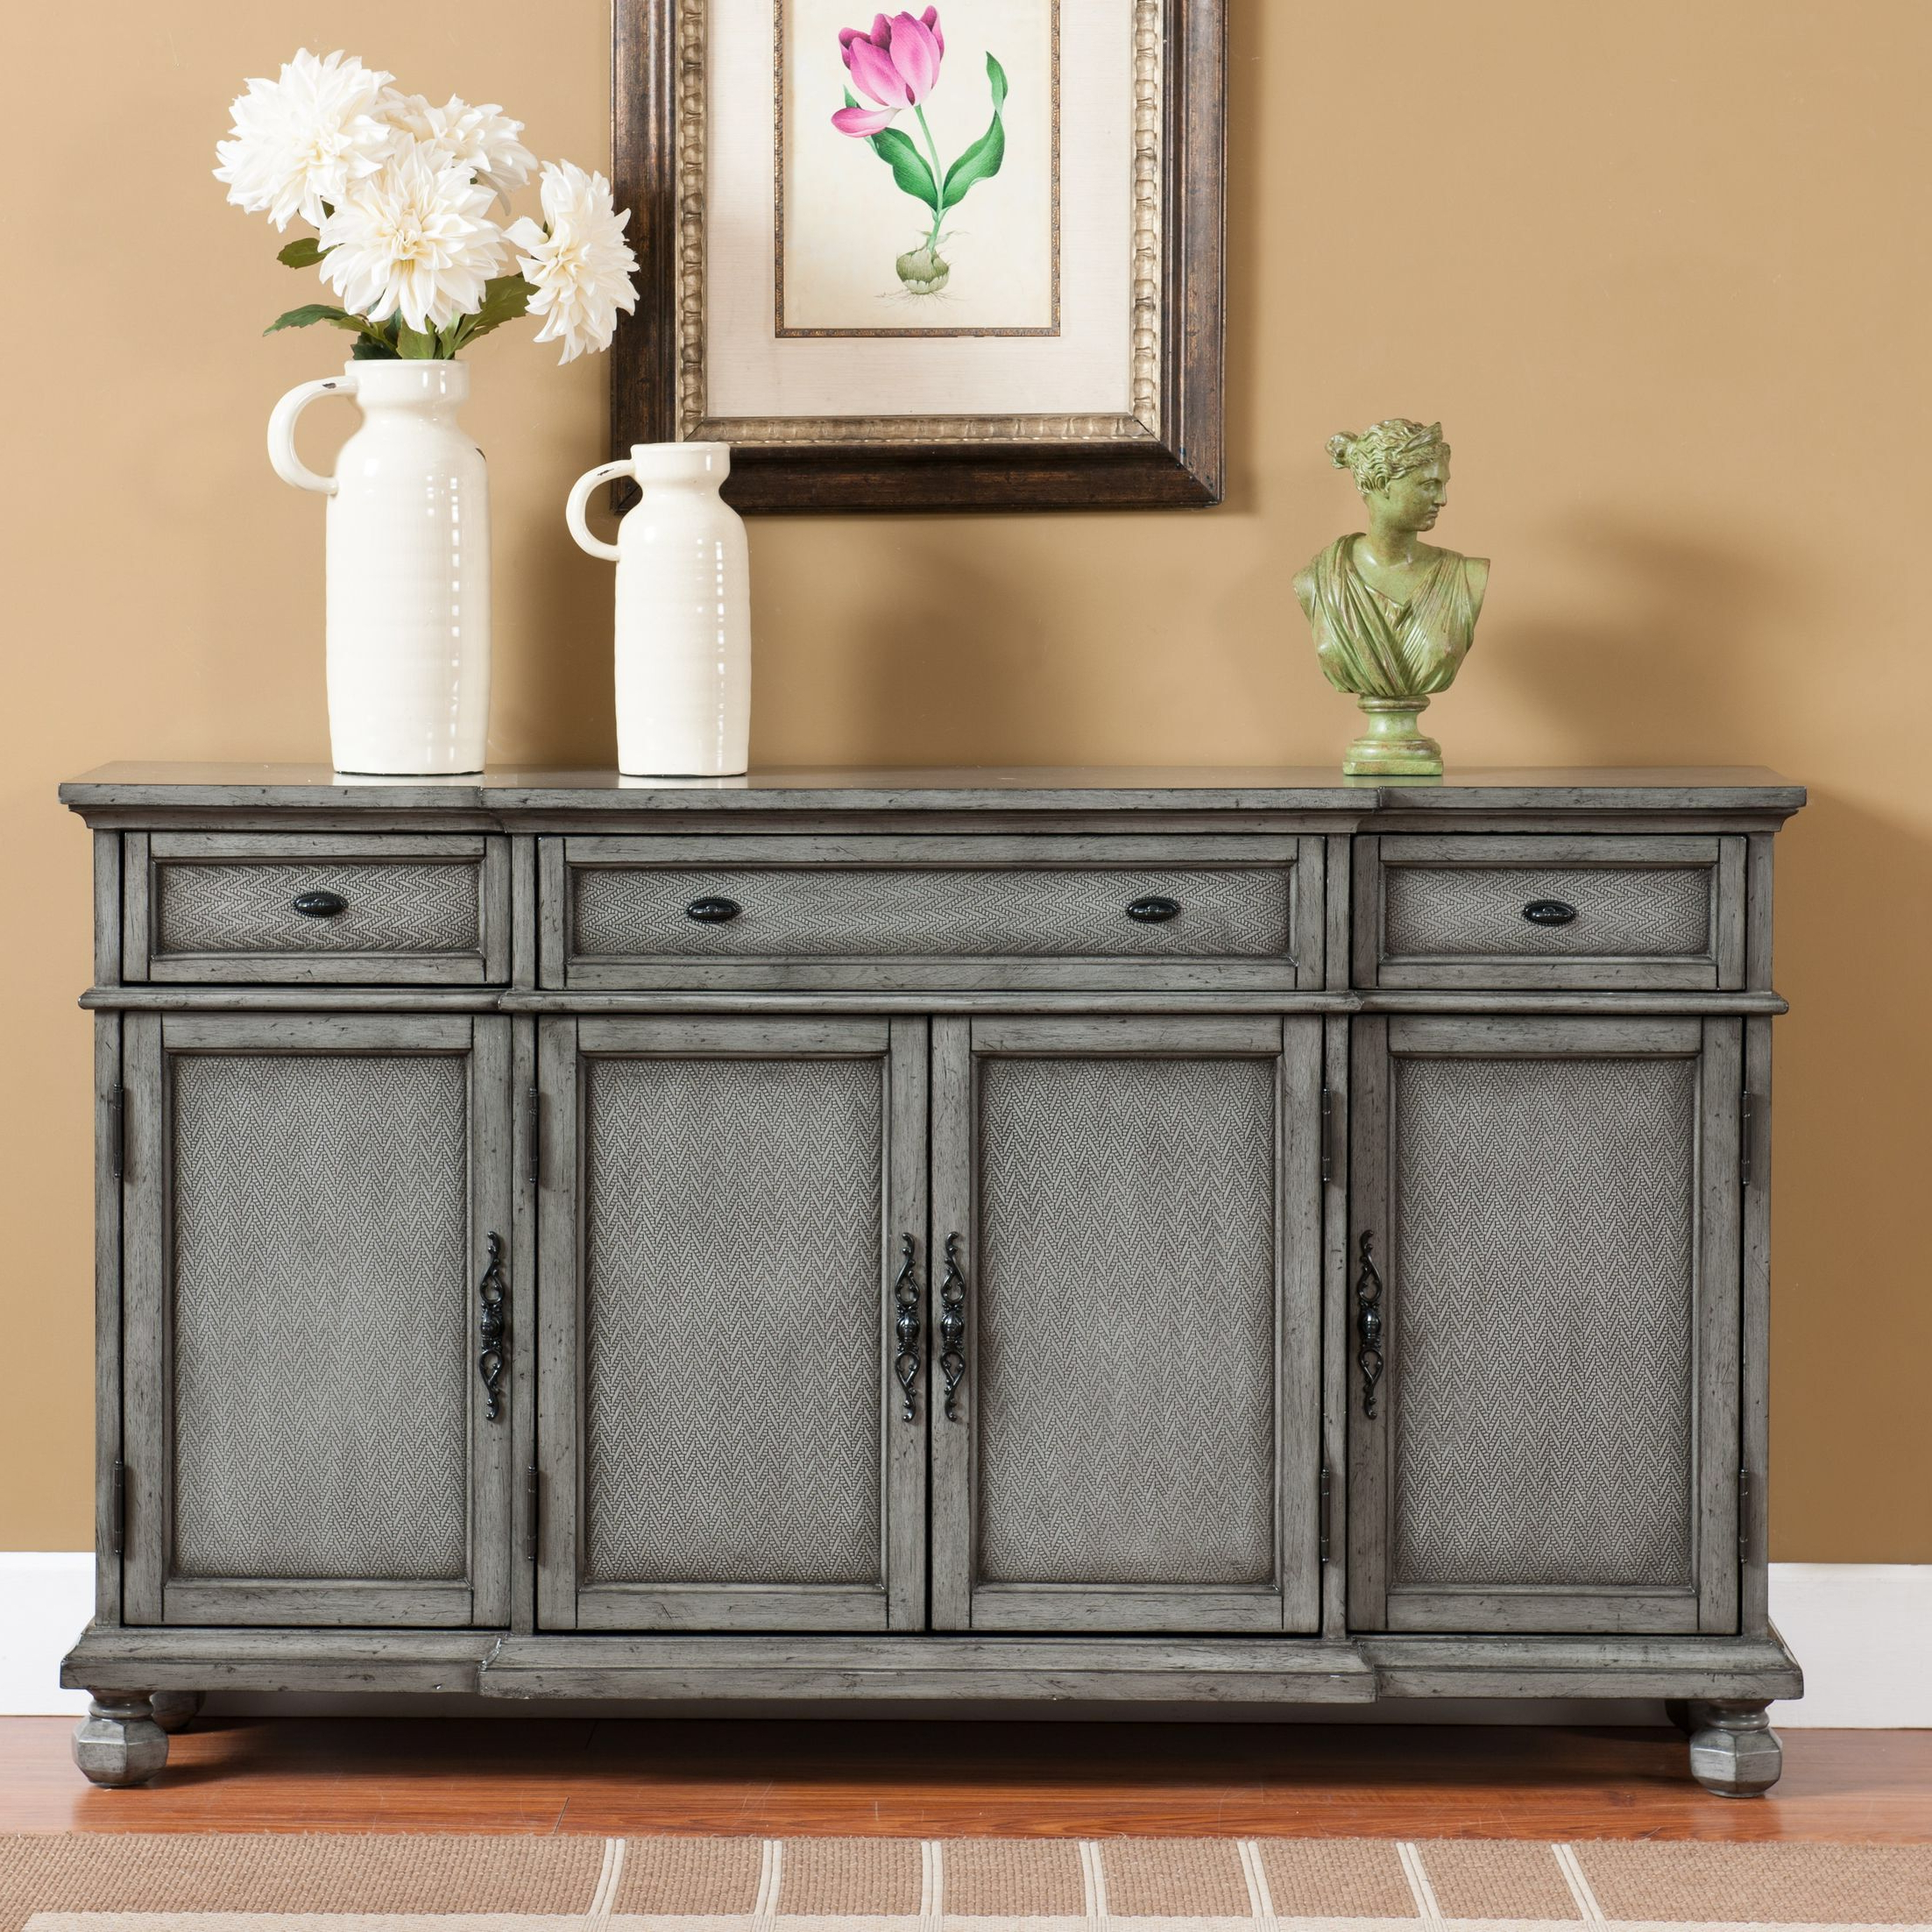 Giulia 3 Drawer Credenza (View 6 of 20)